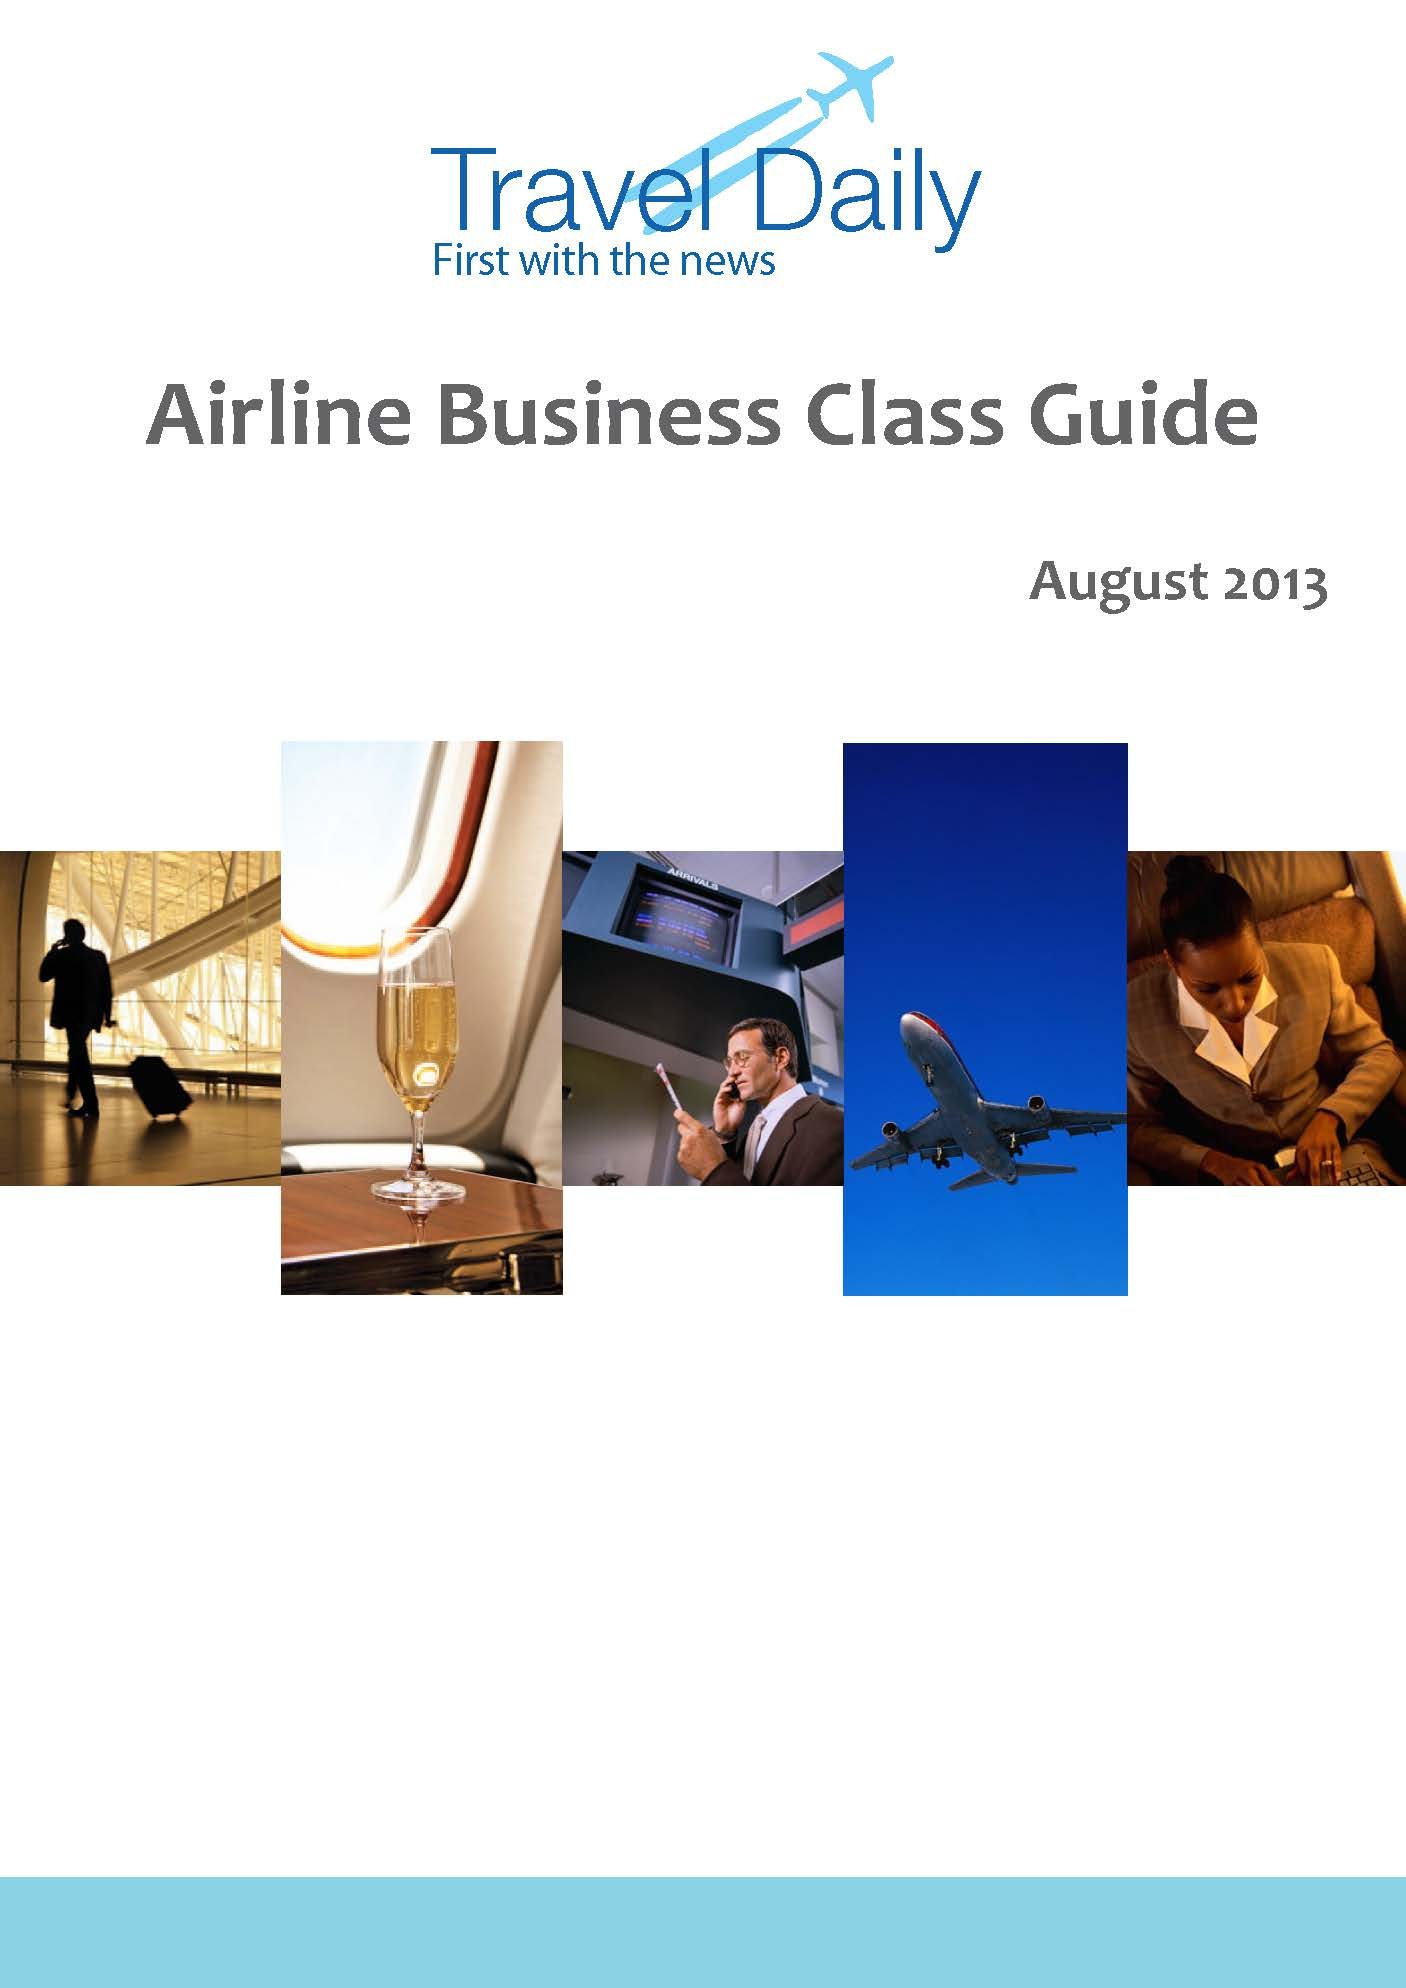 2013 airline business class guide travel daily airline business guide cover page 2013